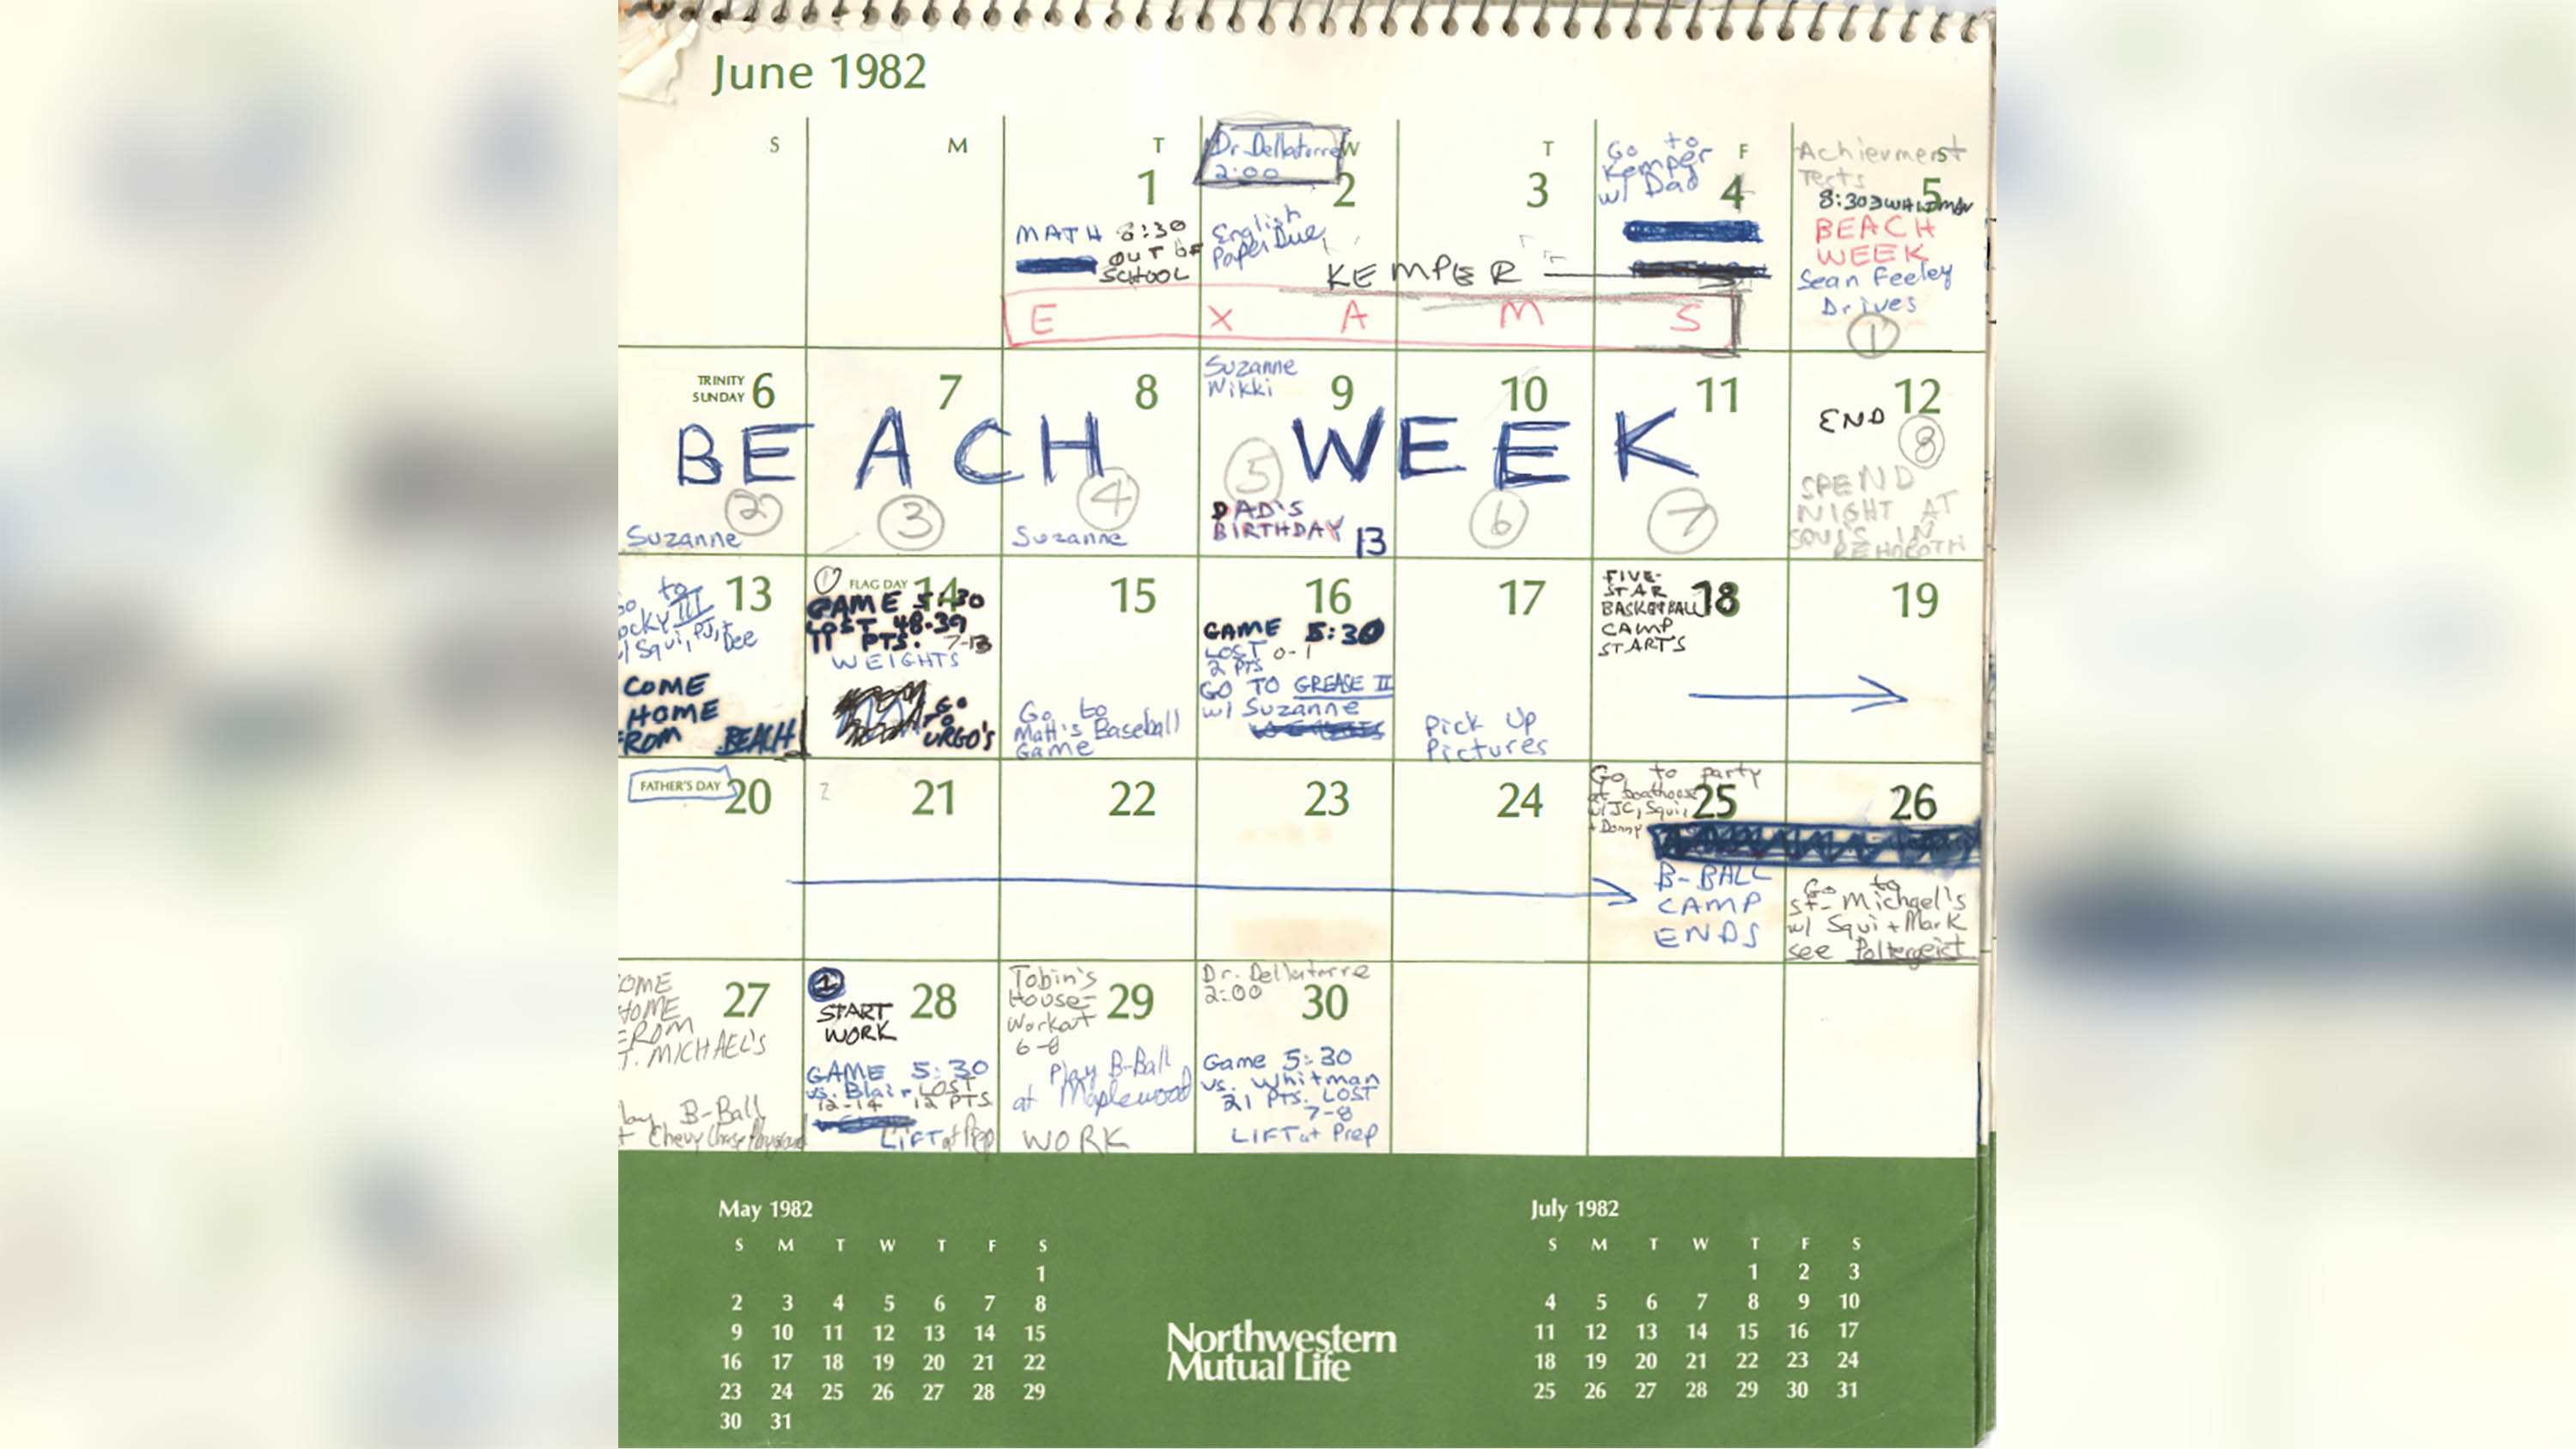 Kavanaugh Shares Pages From His 1982 Calendar